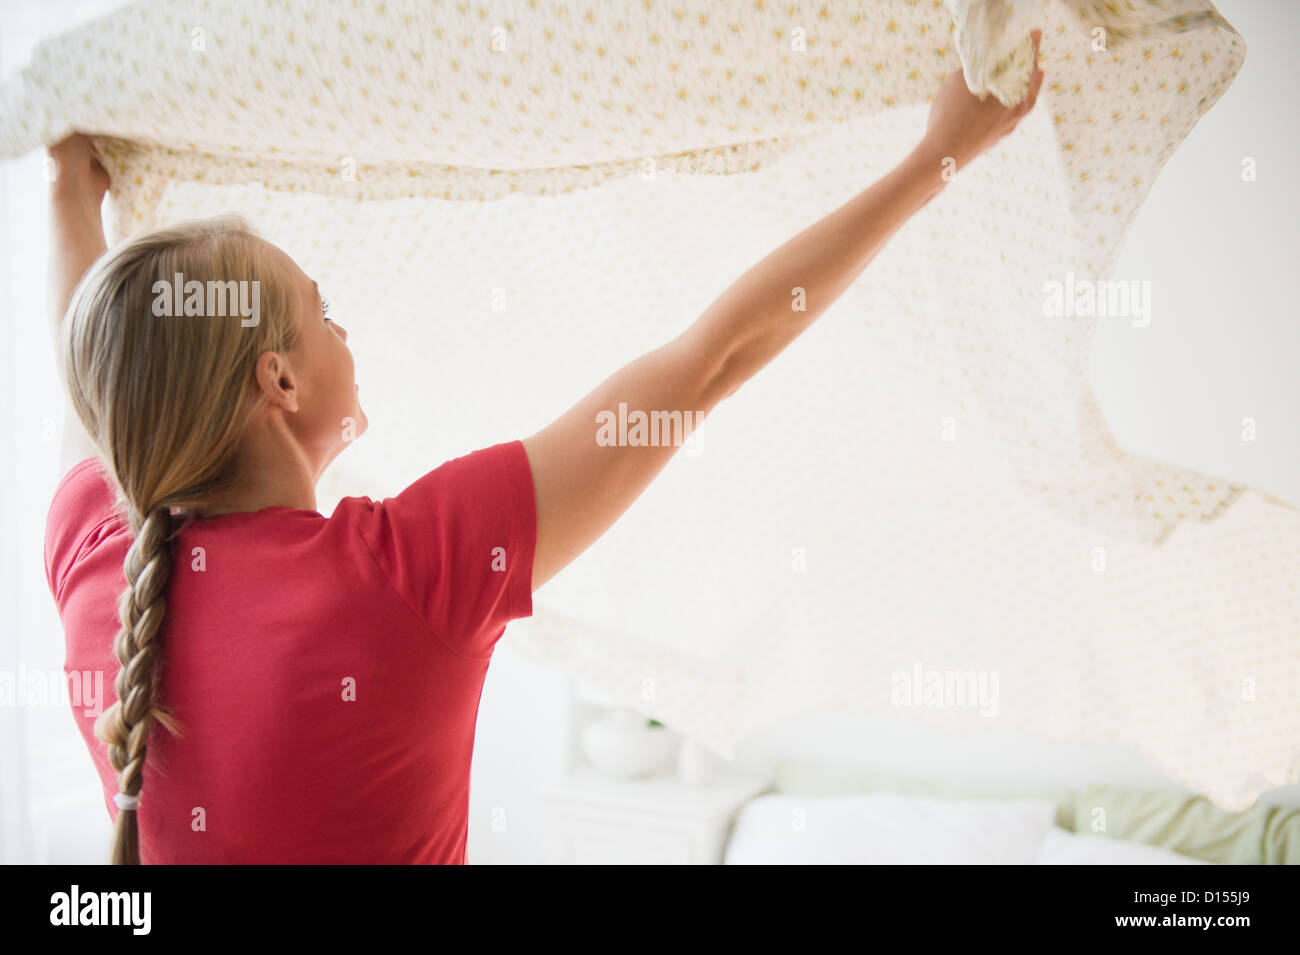 USA, New Jersey, Jersey City, Young woman preparing clean sheet for bed - Stock Image